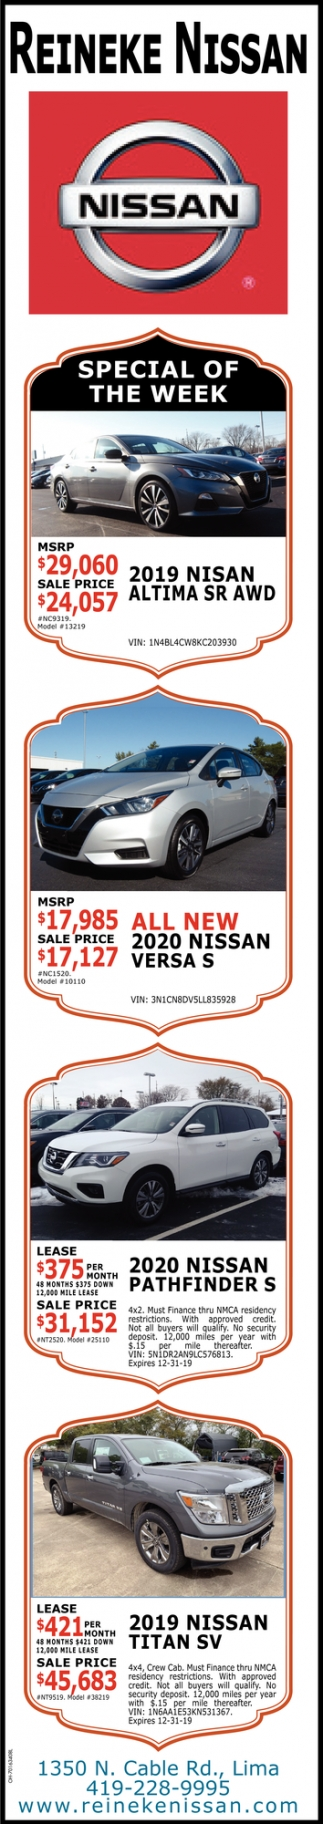 Special of the Week - 2020 Nissan Pathfinders